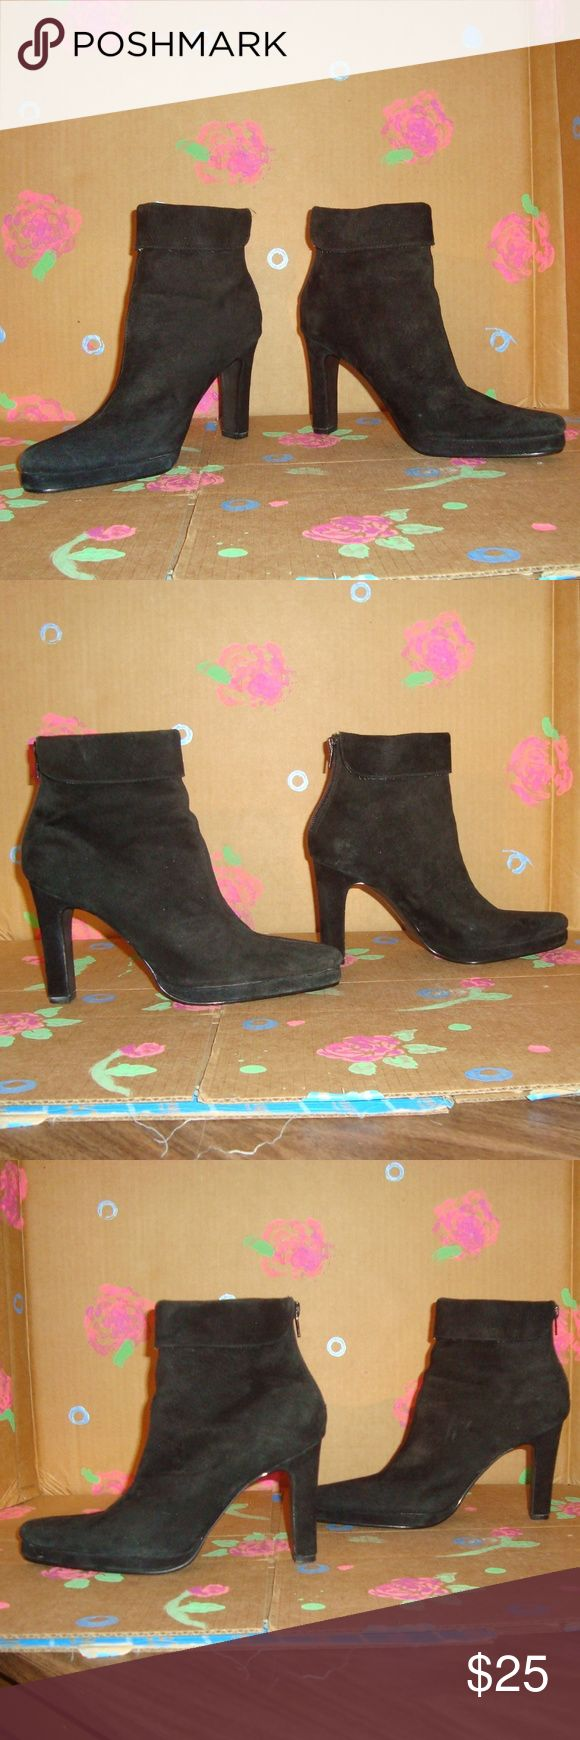 Colin Stuart Black Suede Boots Booties Size 7 Colin Stuart Black Suede Boots Booties Size 7  Style 128698-093 In Good Pre-Owned Condition Gently worn, zips at back of heel Leather Upper, Balance Man Made * Defect Noted Half Inch Cut on inside of Right Shoe (Not noticeable when worn) PLEASE SEE PHOTOS - THANK YOU! Colin Stuart Shoes Ankle Boots & Booties